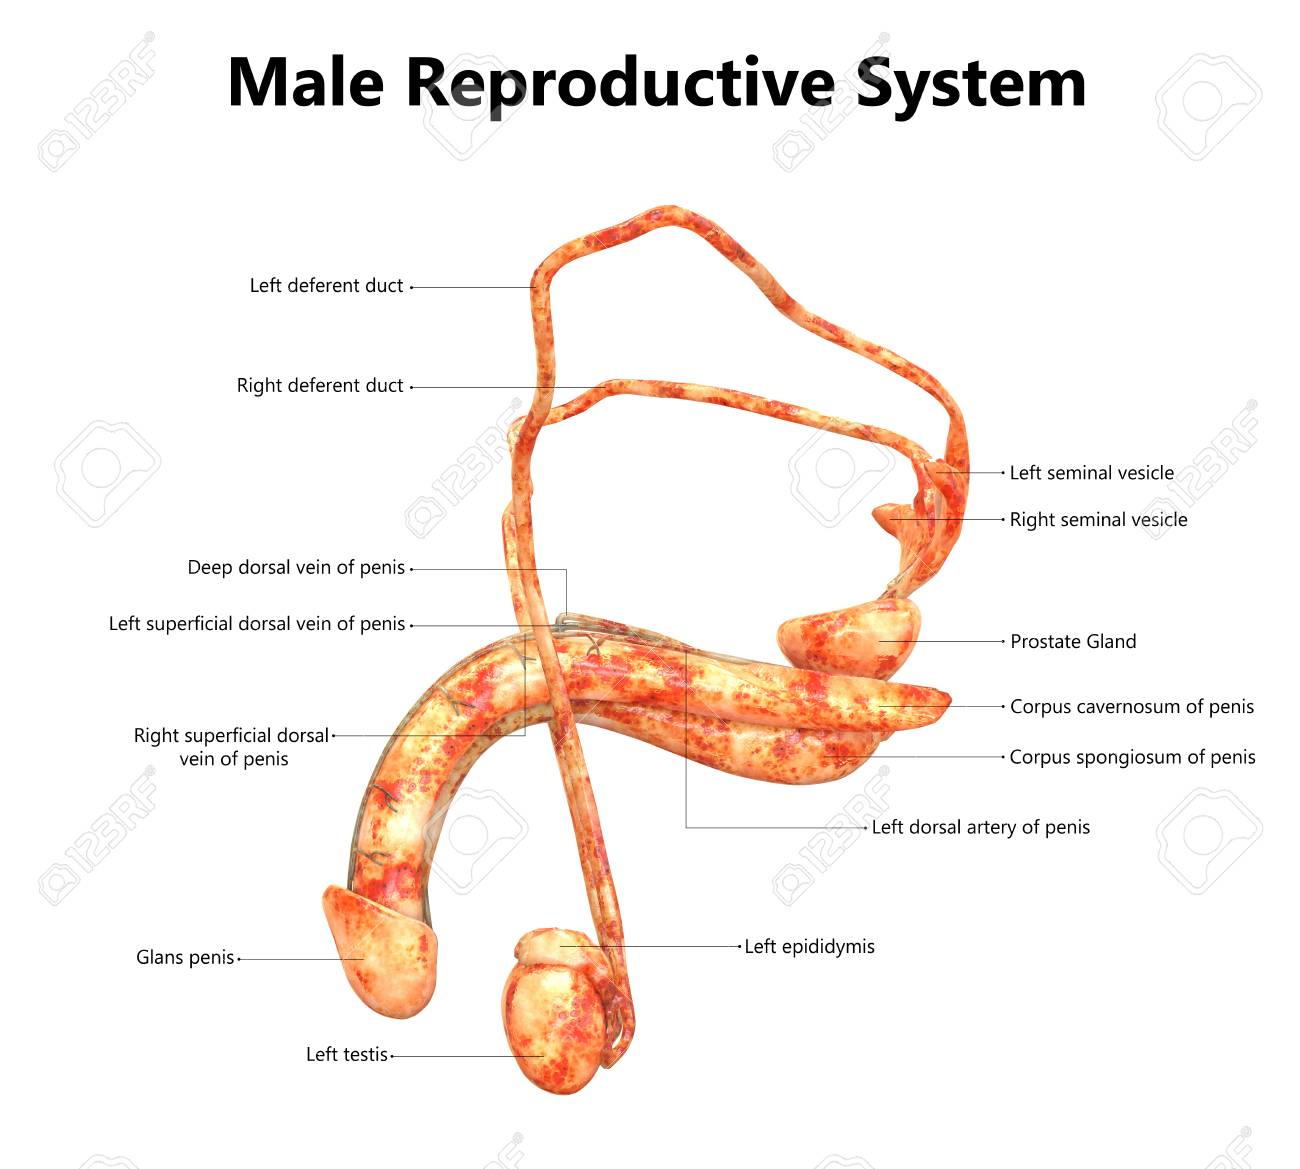 Male Reproductive System With Labels Anatomy (Lateral View) Stock ...